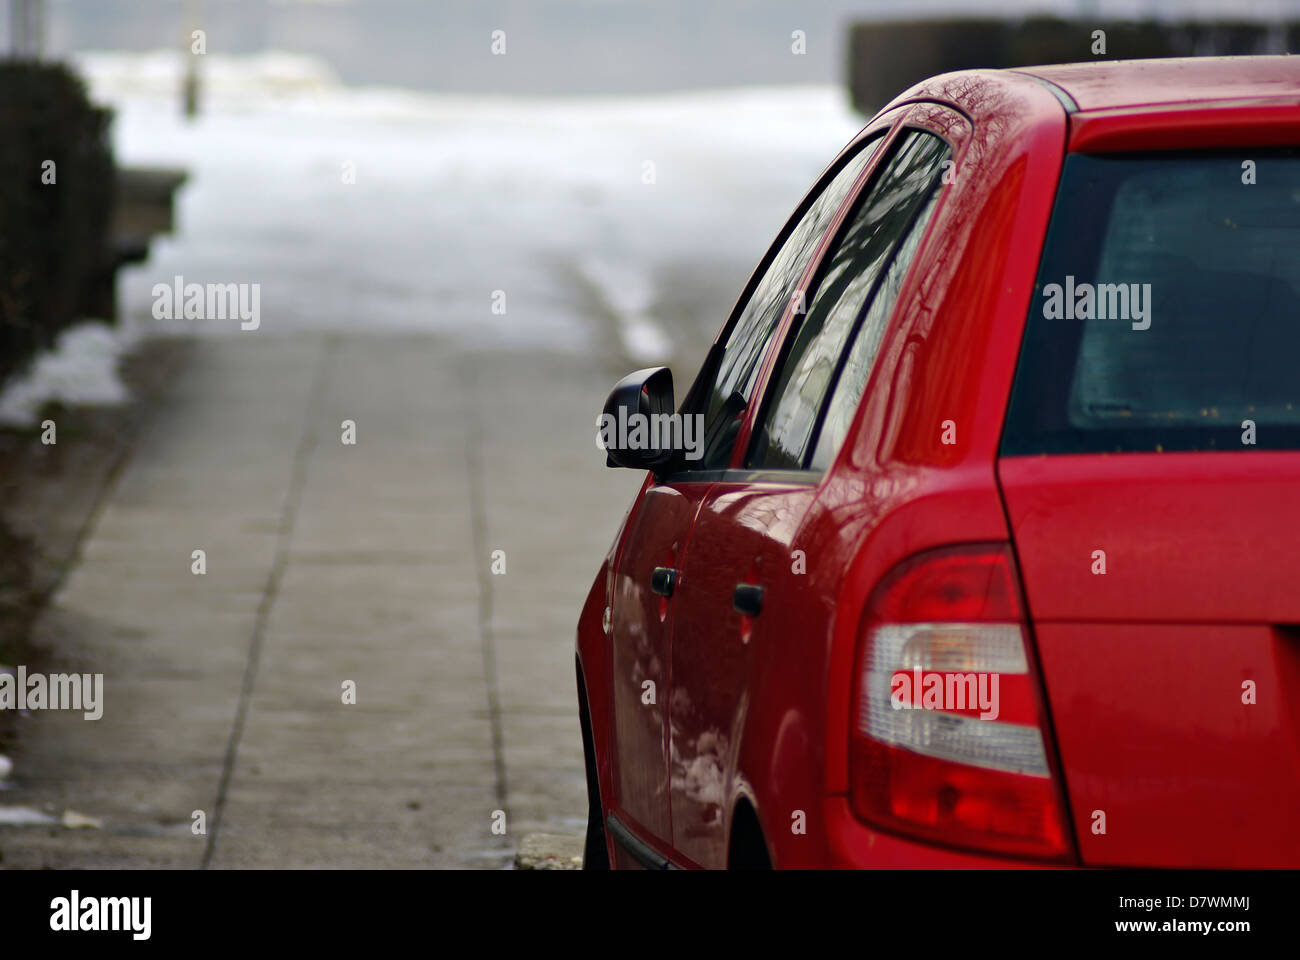 Rear part of red passenger car with blurred background. - Stock Image